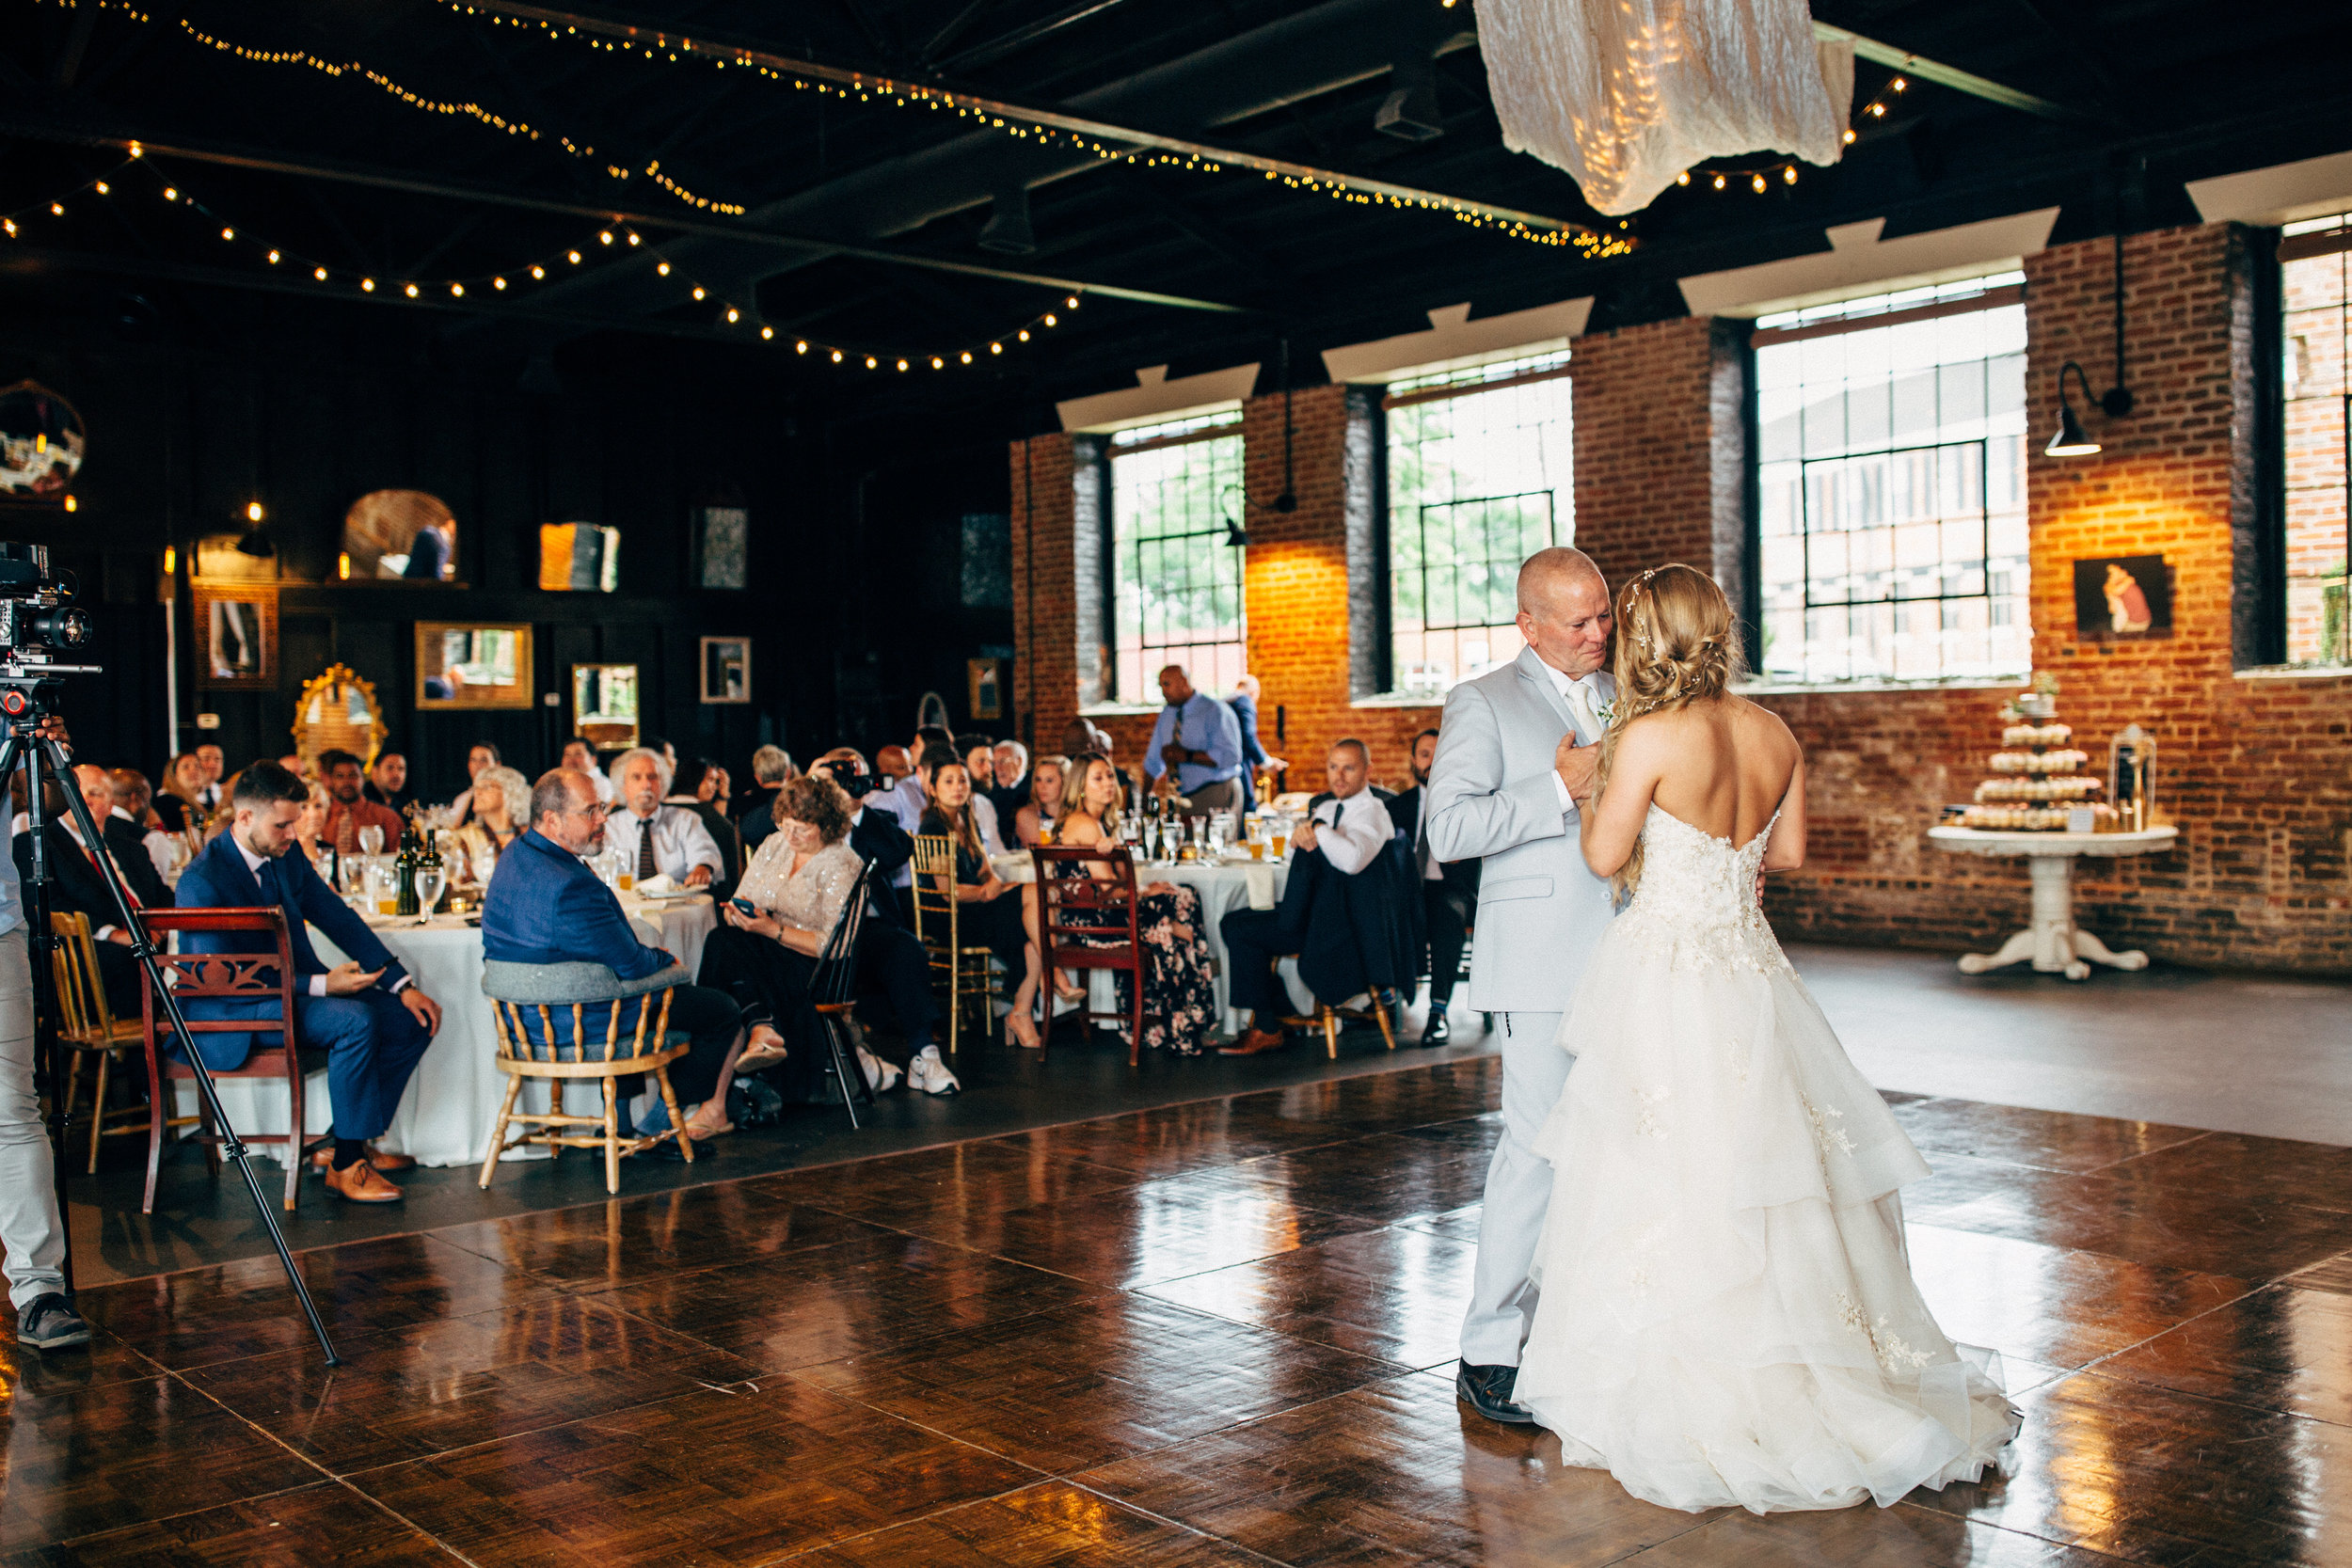 bride and her father dancing at wedding reception at the Inn at the Old Silk Mill